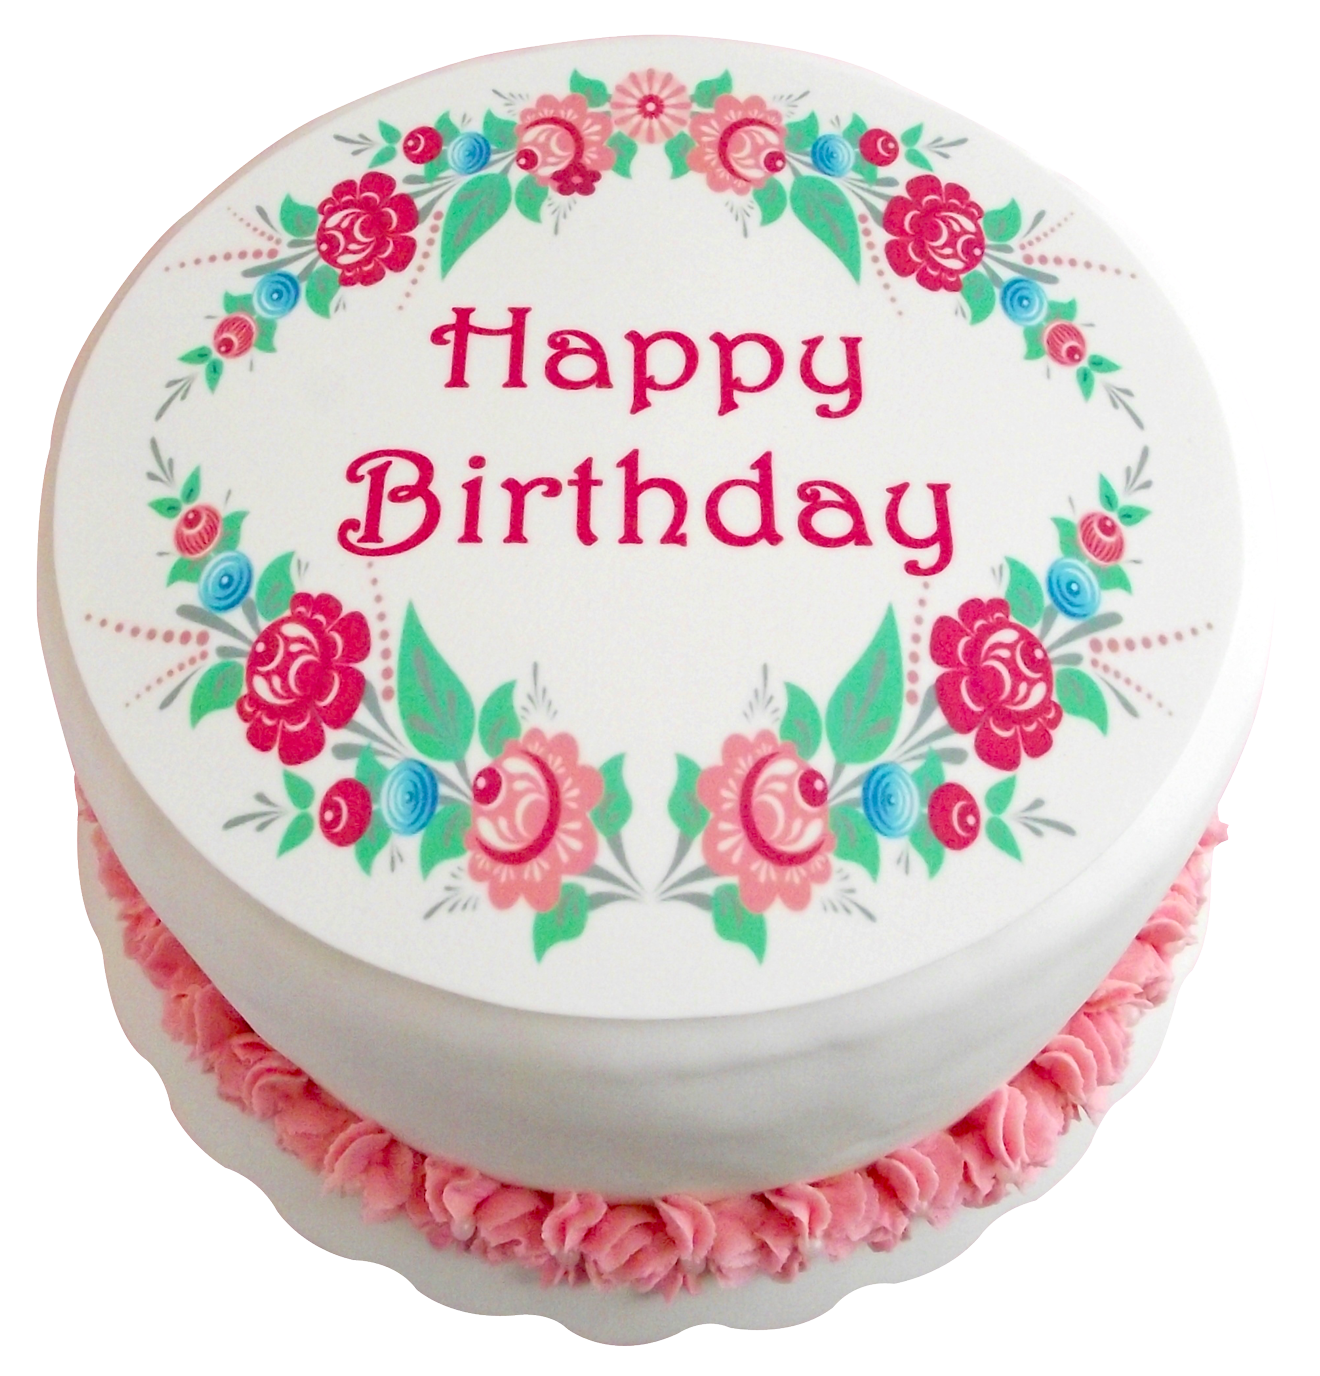 Birthday Cake Png Transparent Birthday Cakeg Images Pluspng